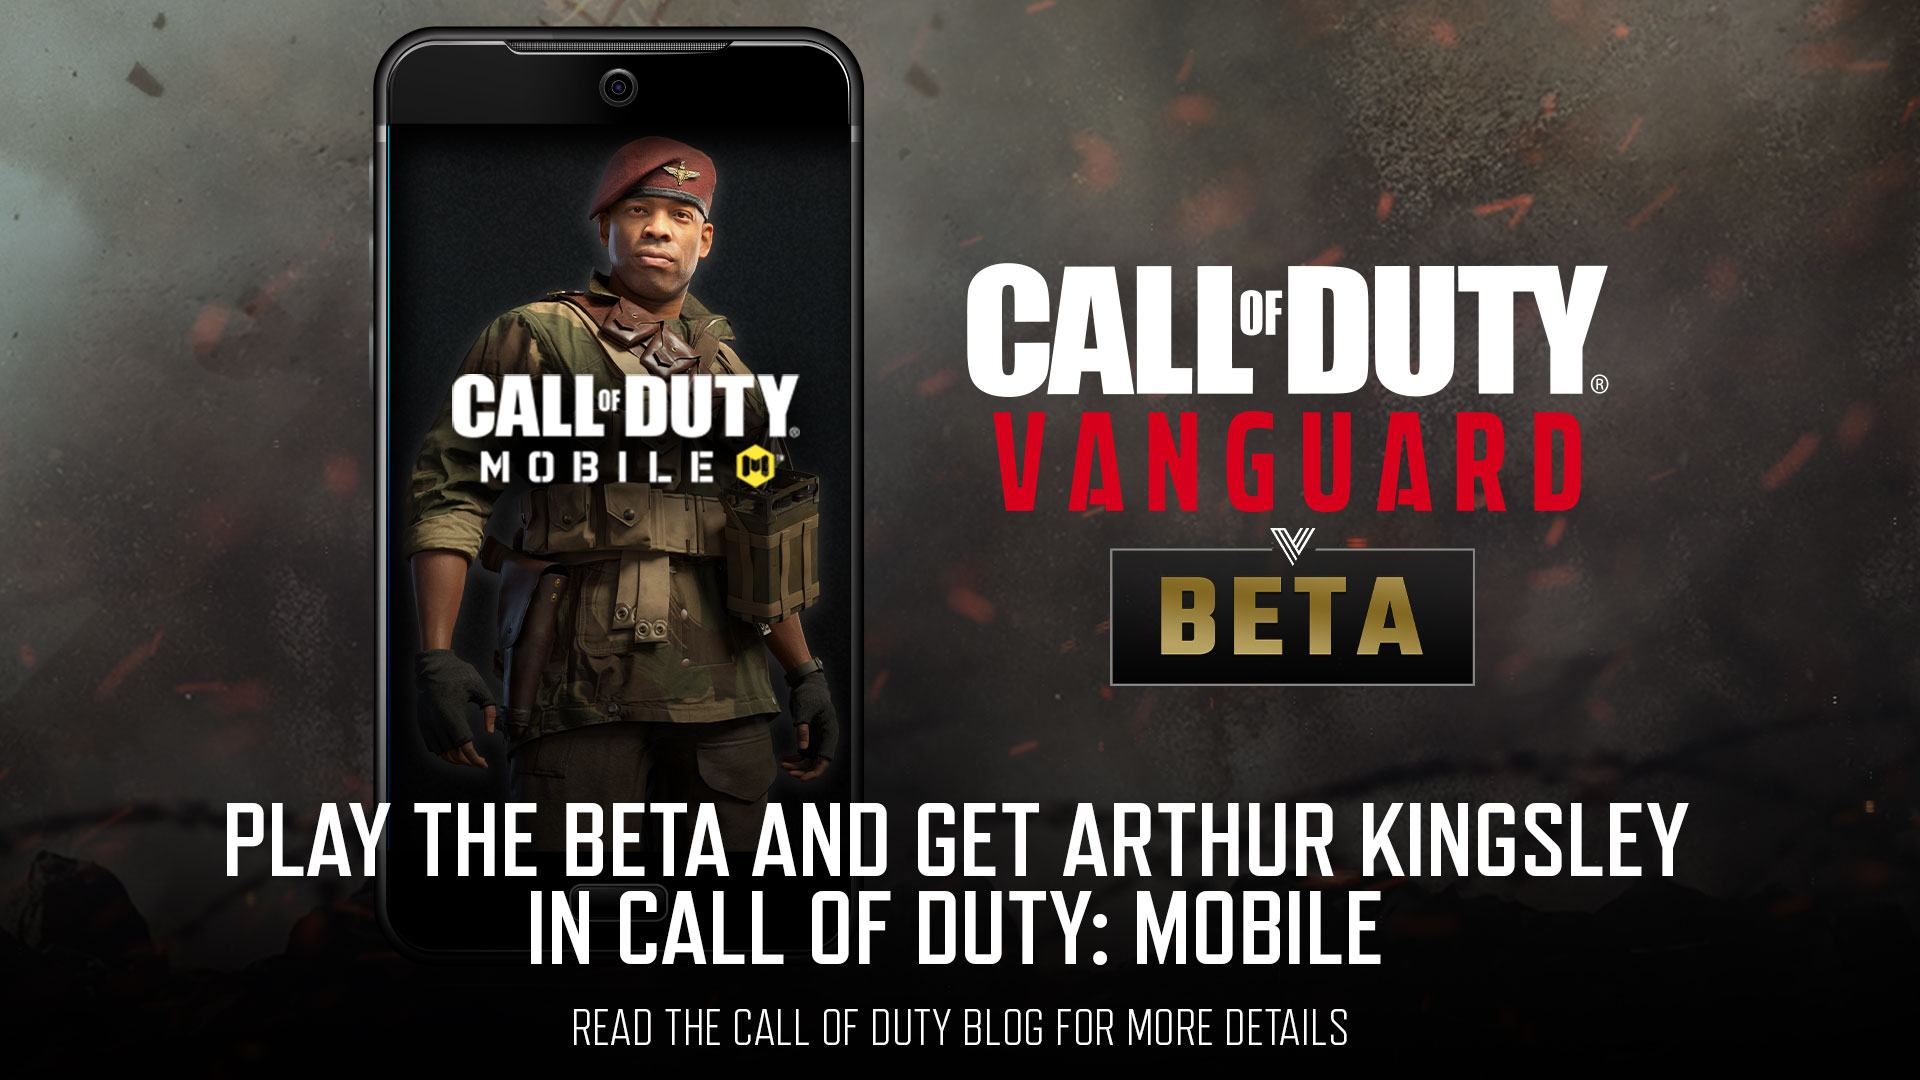 Operator Kingsley Can Now be Obtained in Call of Duty: Mobile by Participating in the Beta of Vanguard